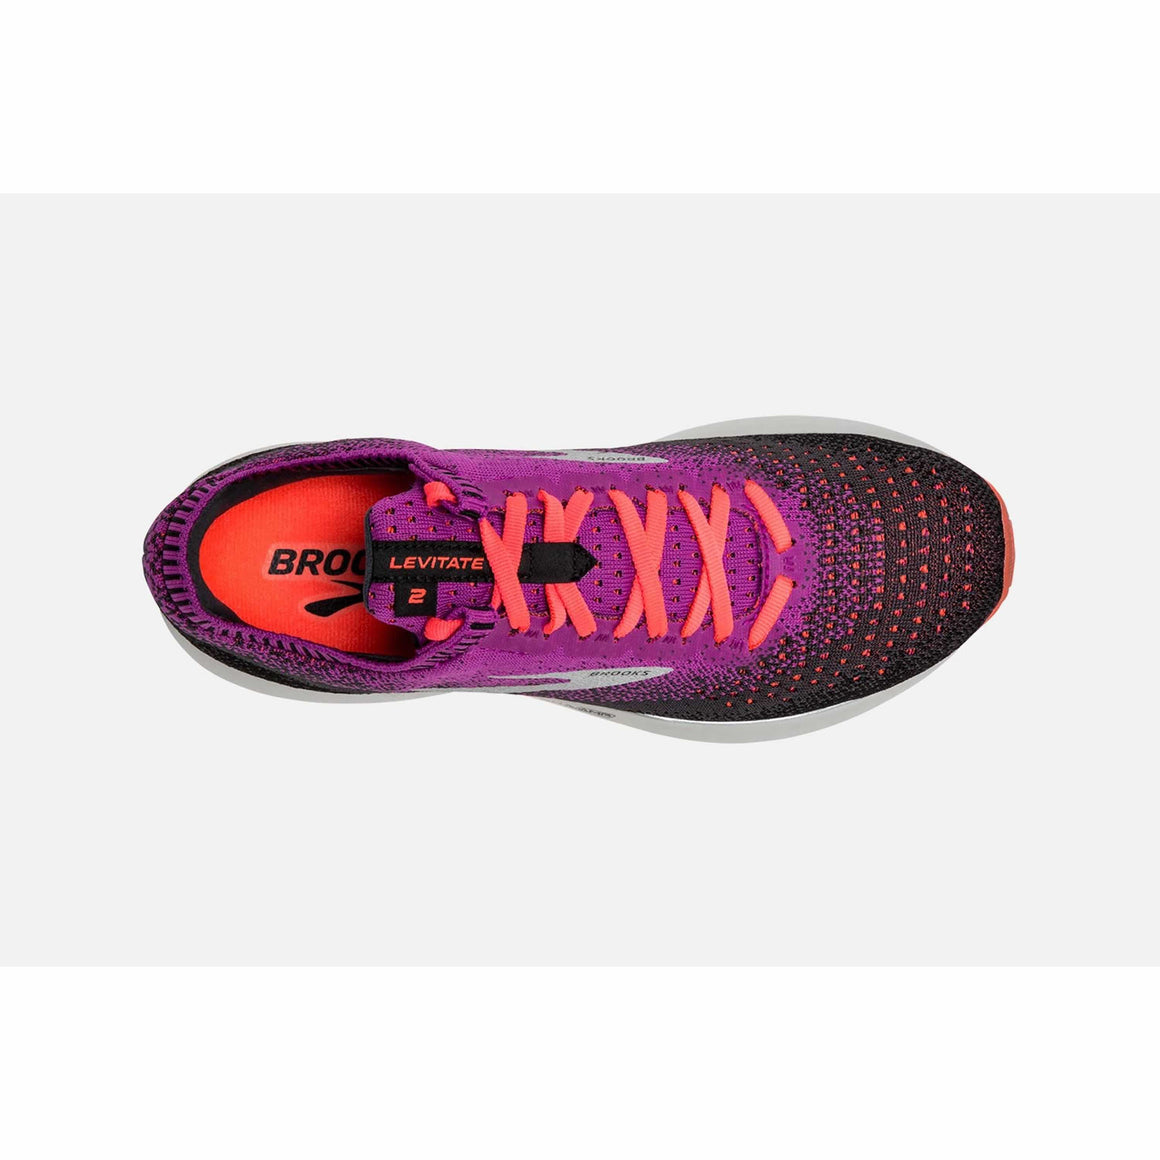 Levitate 2 Road Running Shoes for Women in Colour 596